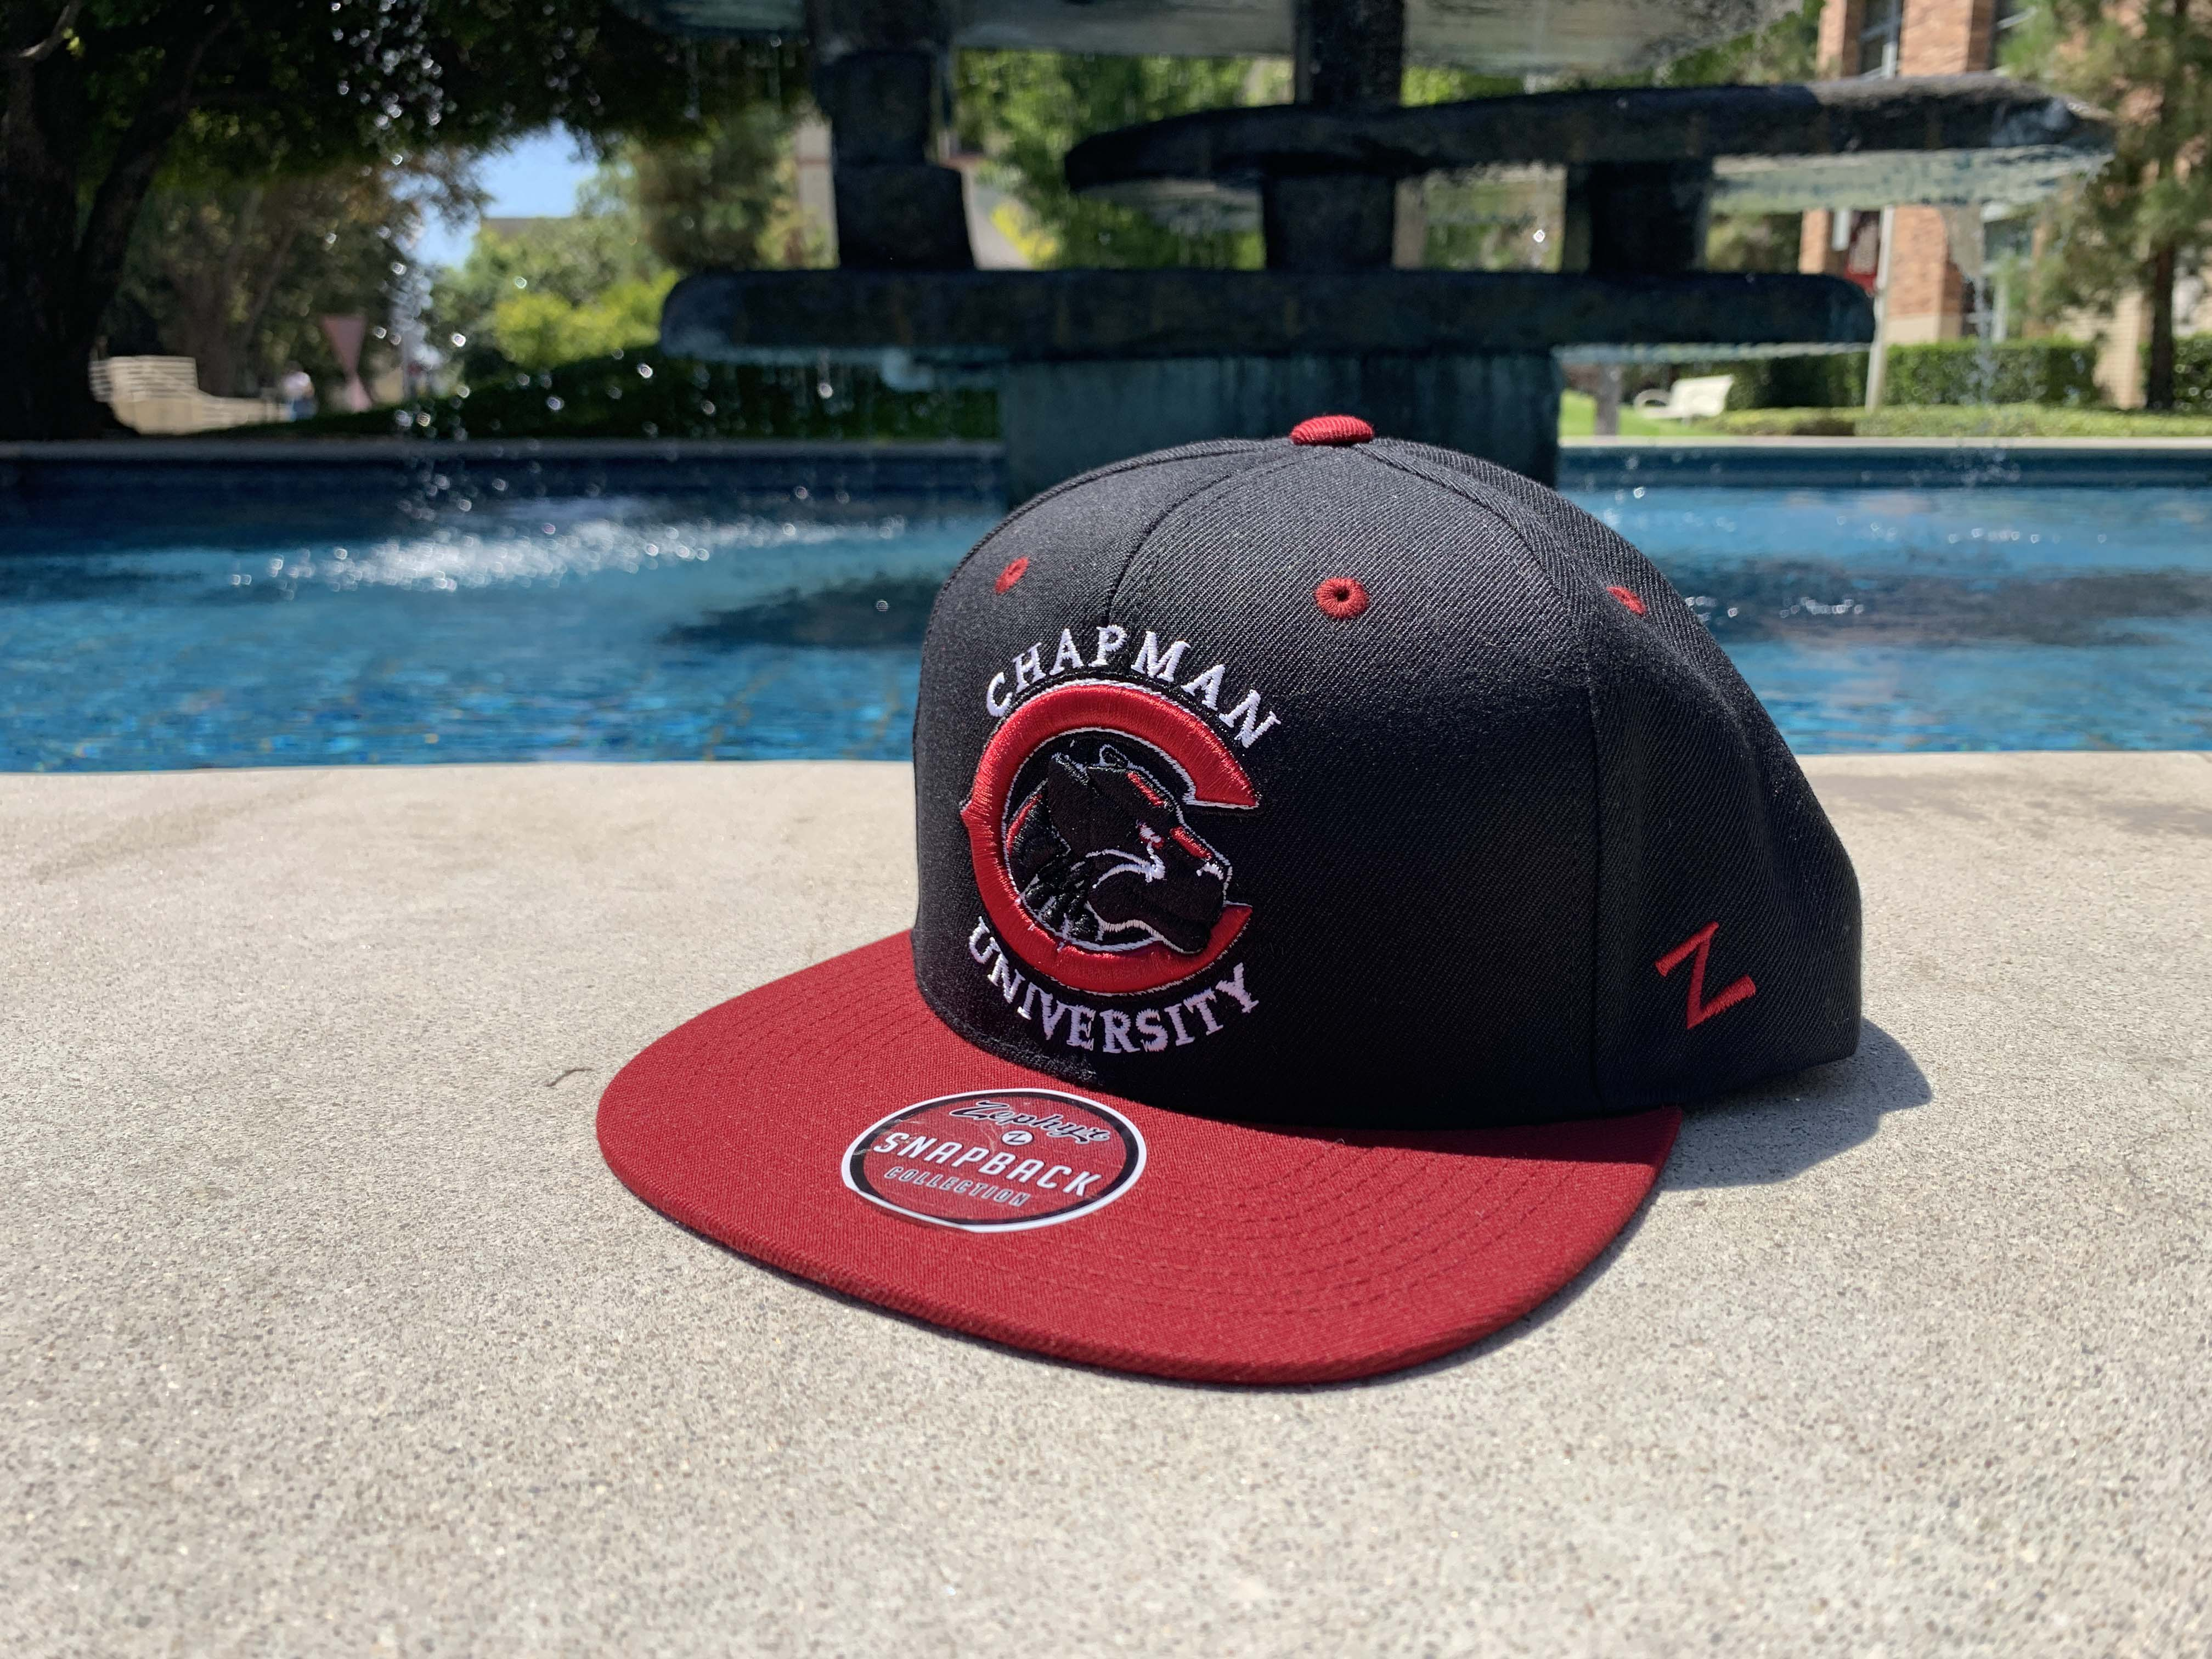 black and red baseball cap with Chapman University panther logo